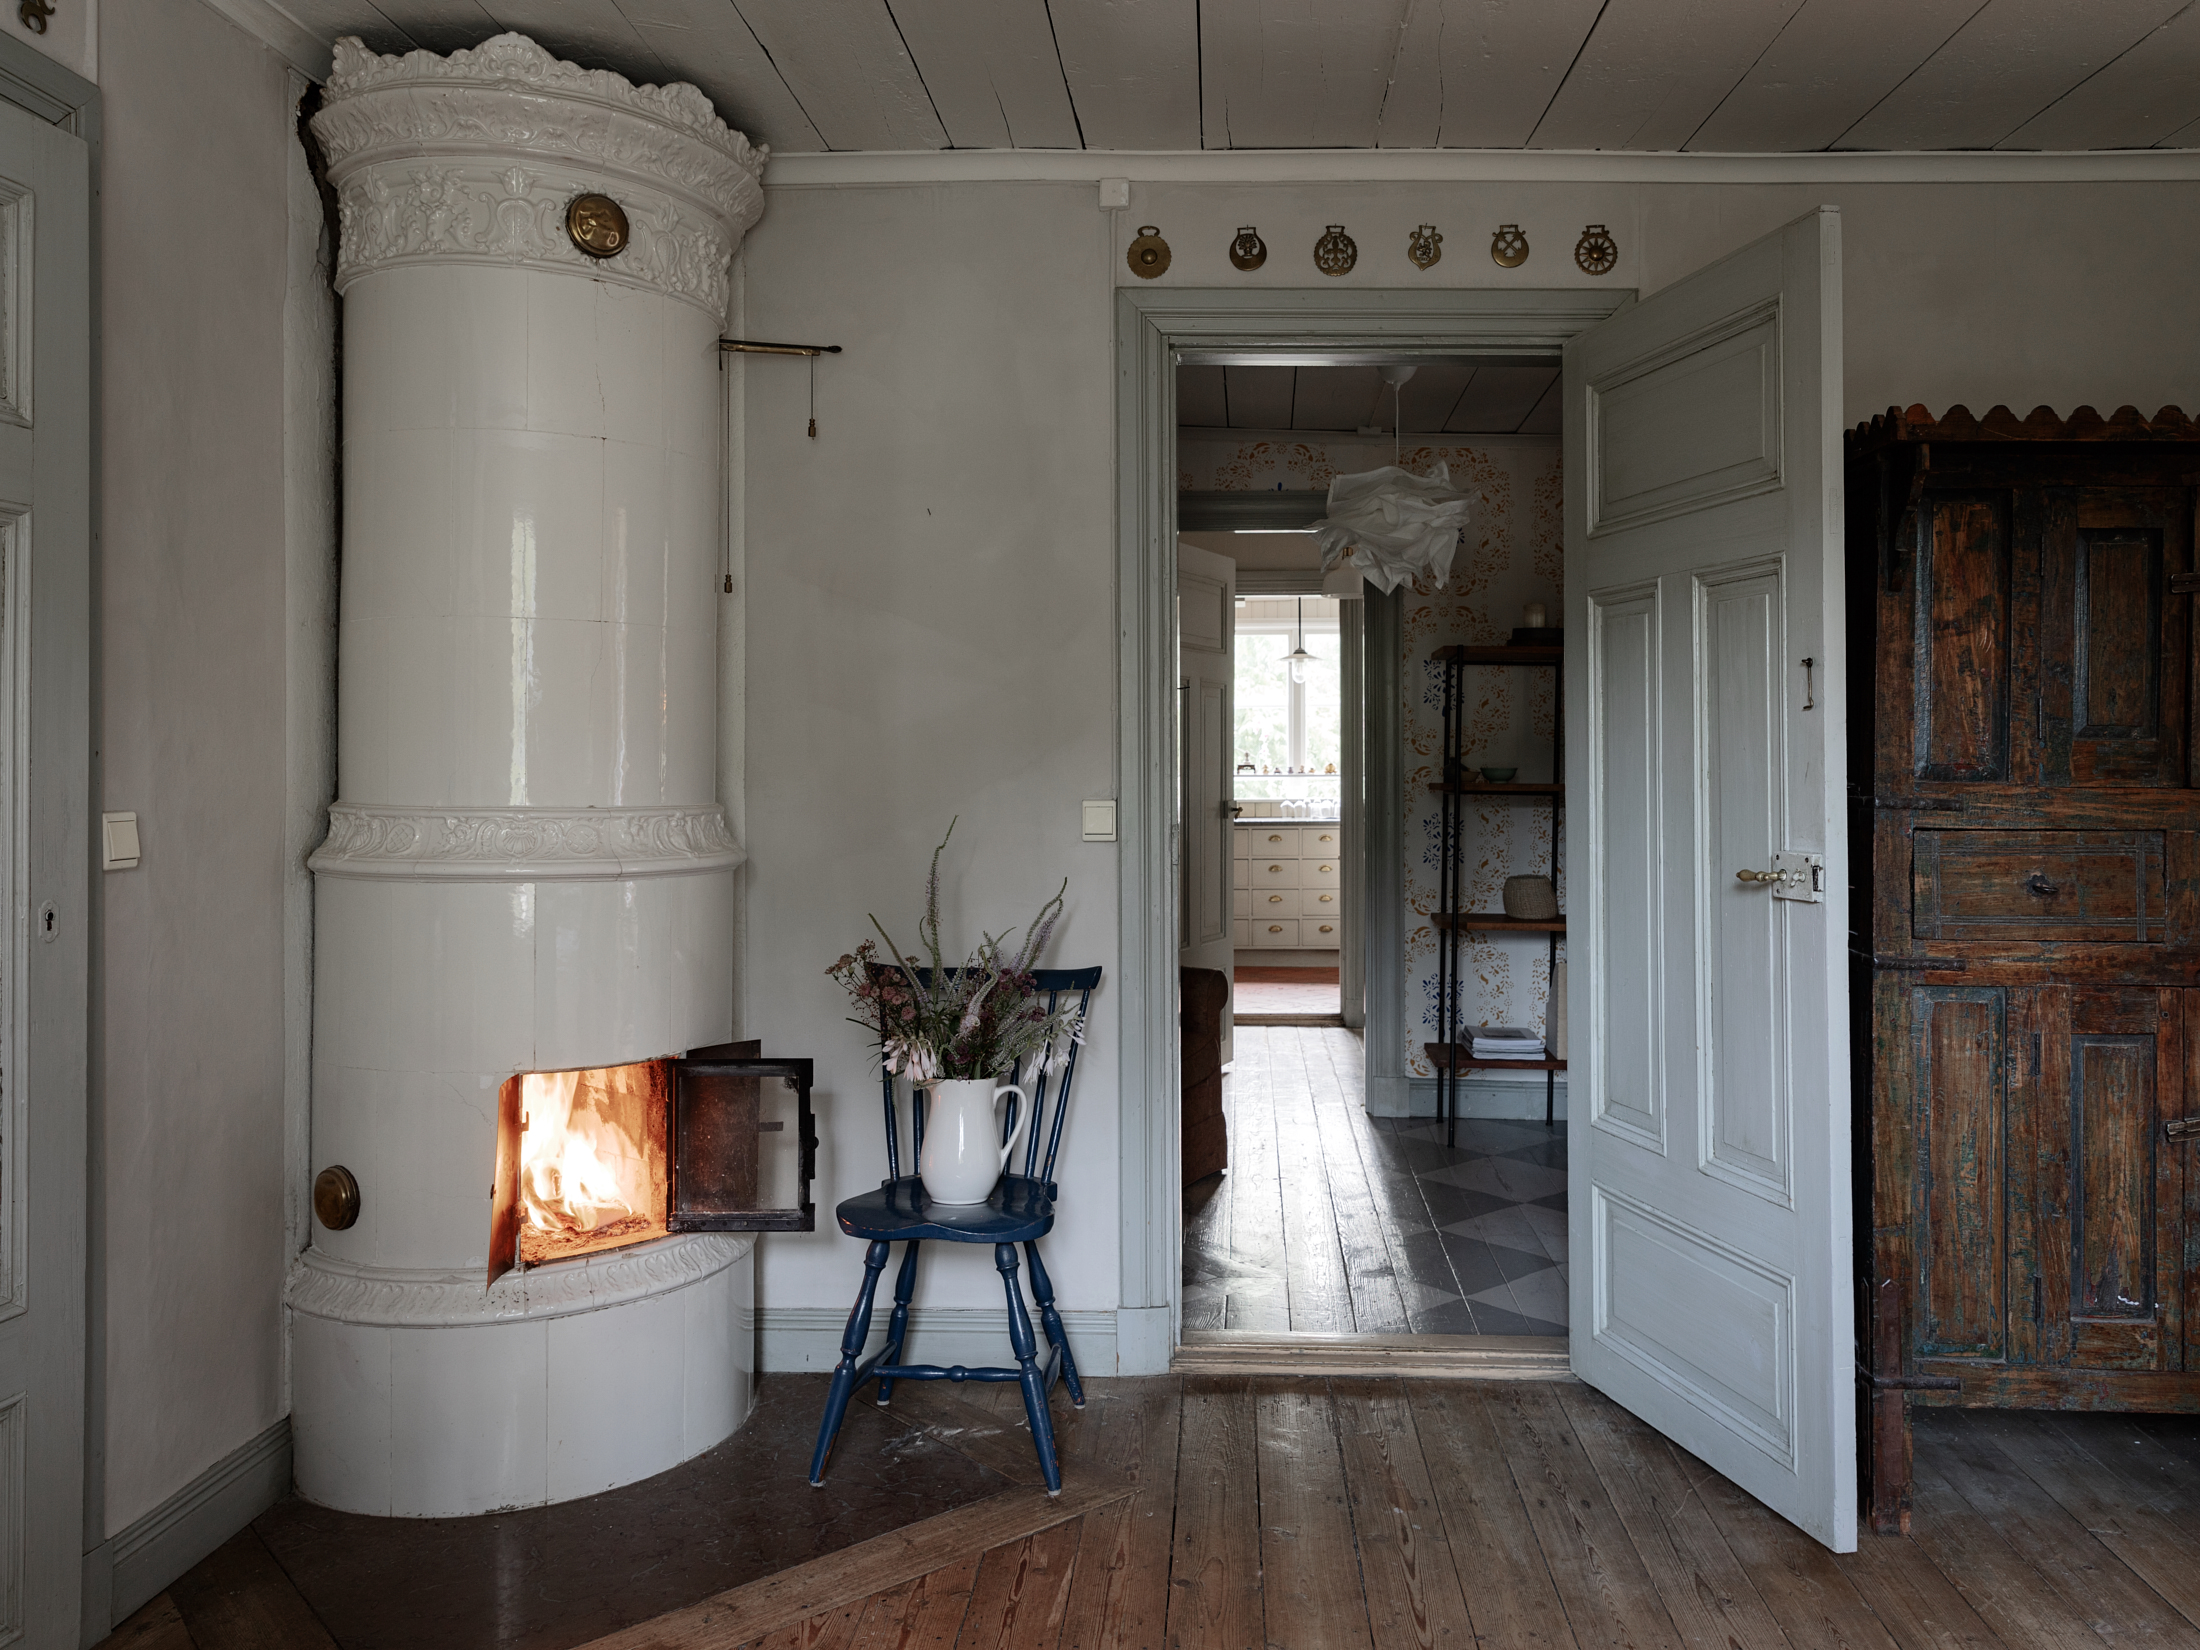 The Nordroom - A Traditional Swedish Farm Surrounded By Nature